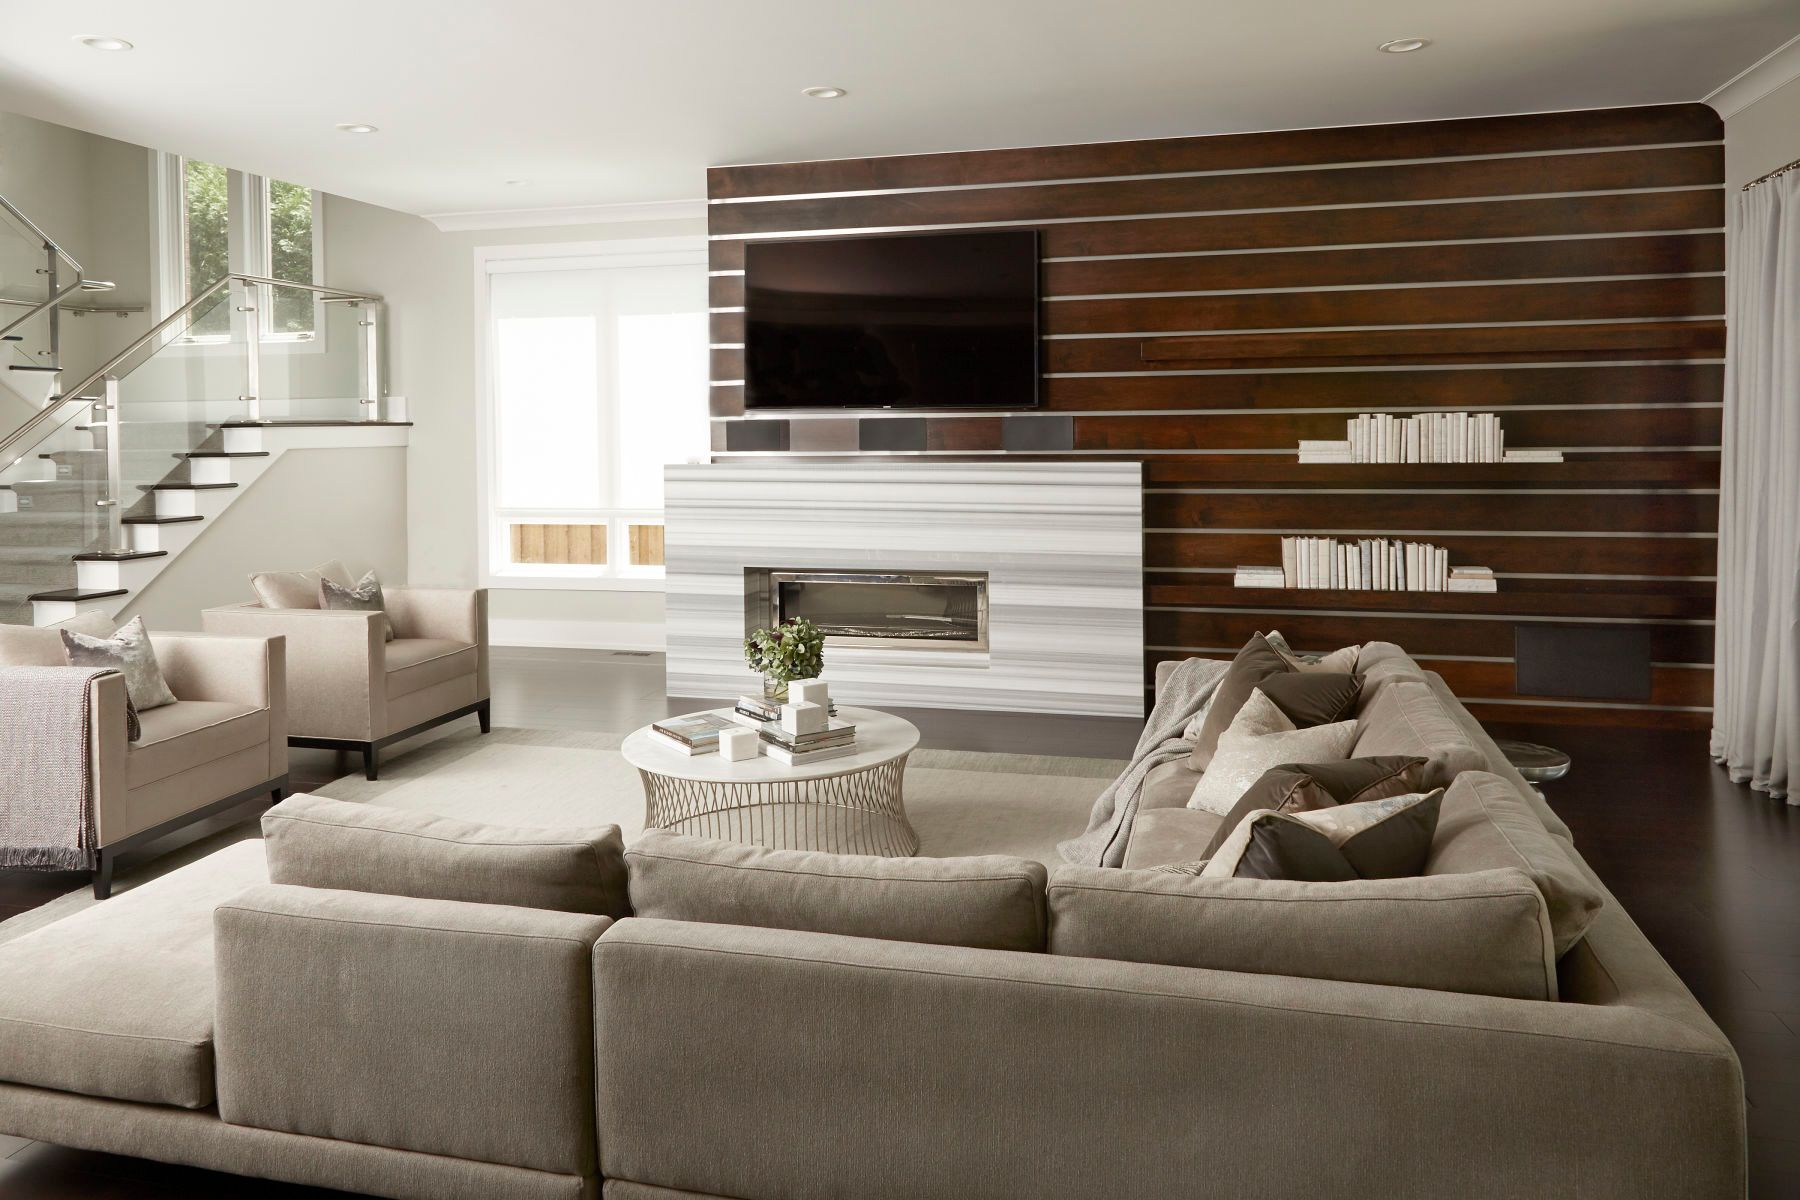 1selects_doshi_residence11101_retouched